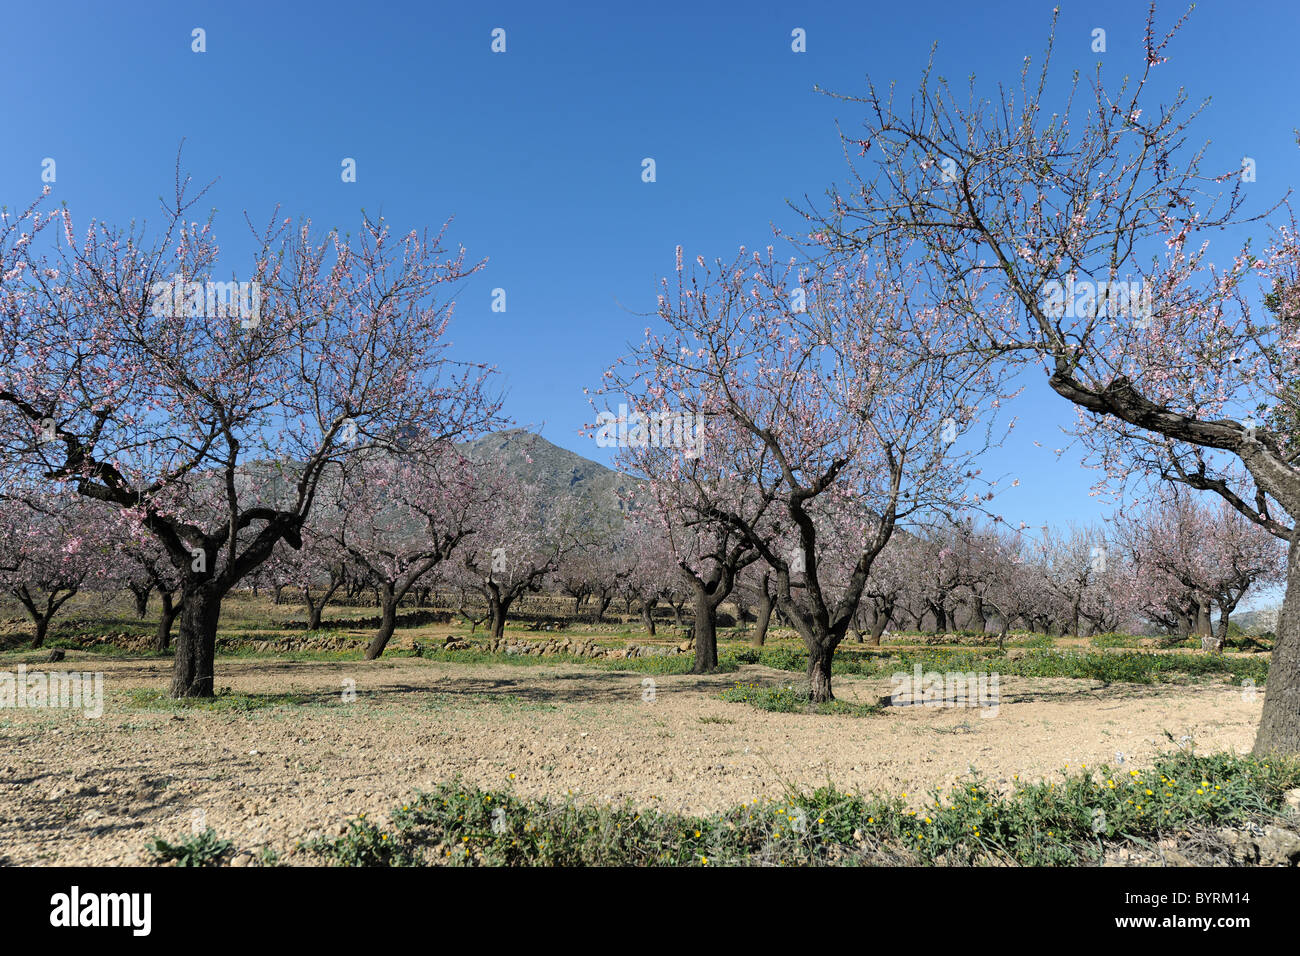 blossom on almond trees in an orchard near Alcalali, (Jalon Valley), Alicante Province, Valencia, Spain - Stock Image